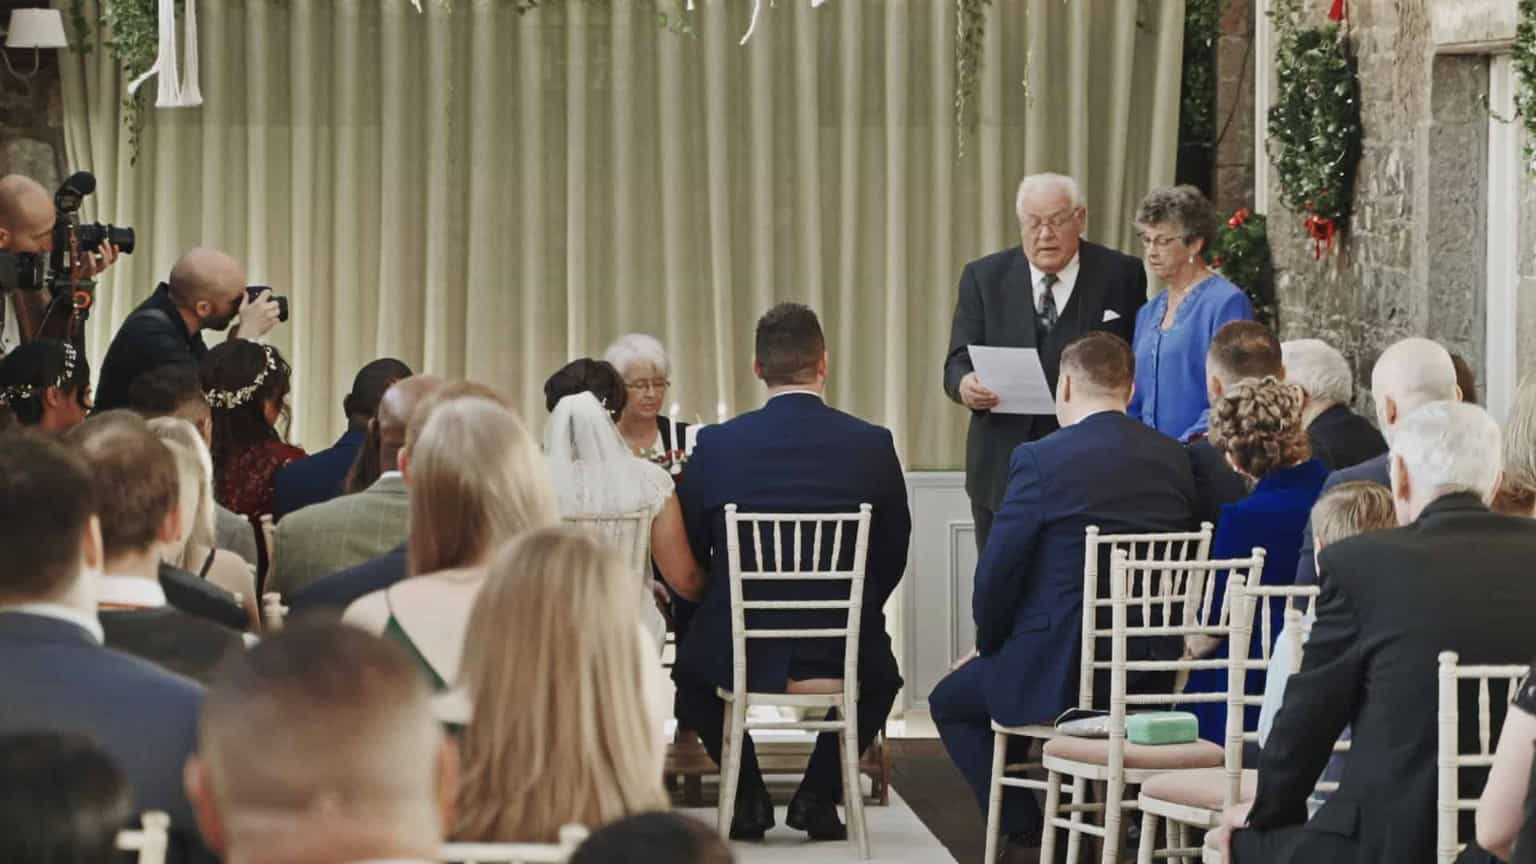 readings during wedding ceremony at conservatory